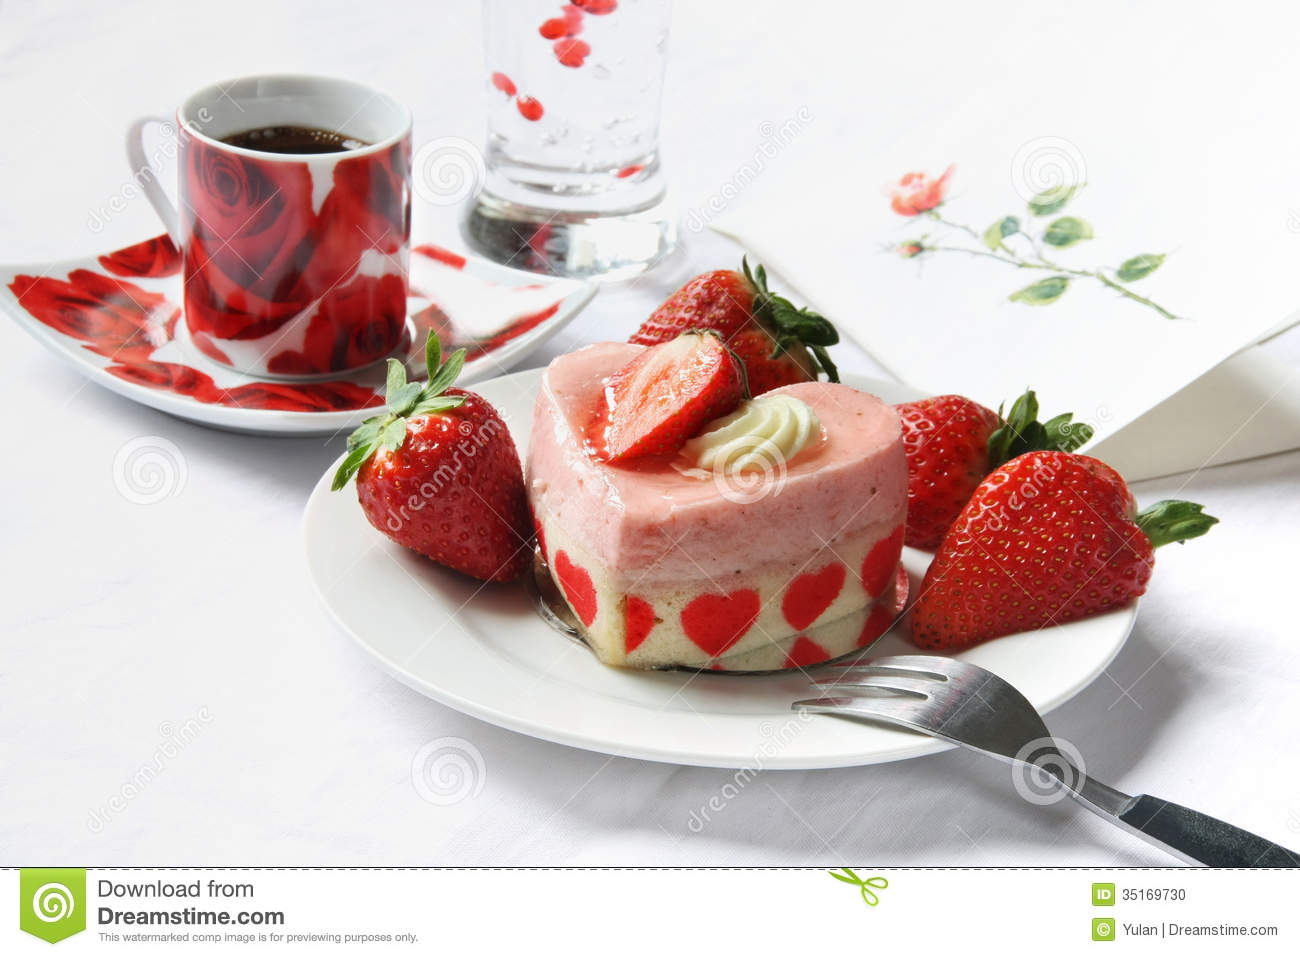 Heart Shaped Cake Stock Photos : Heart Shape Cake With Strawberry Stock Photo - Image: 35169730